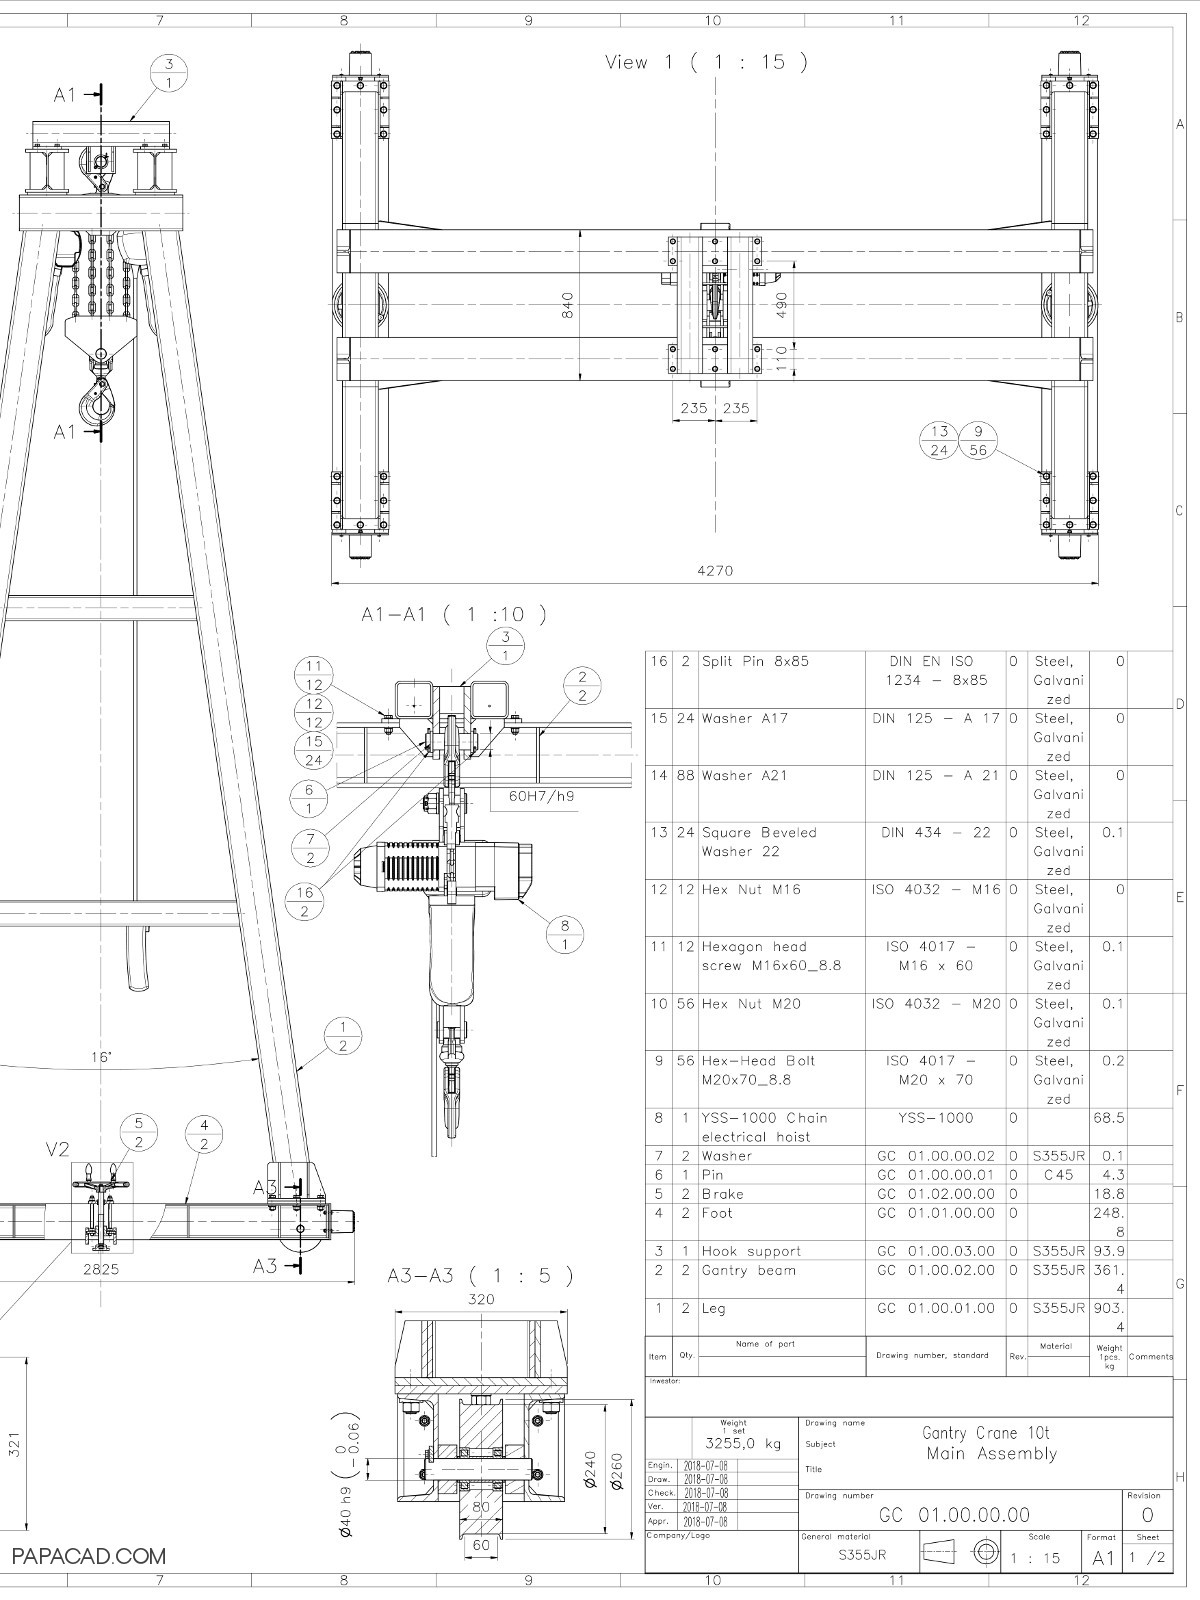 Gantry Crane Design Download Diy Project Schematic 10t Heavy Drawings 2d